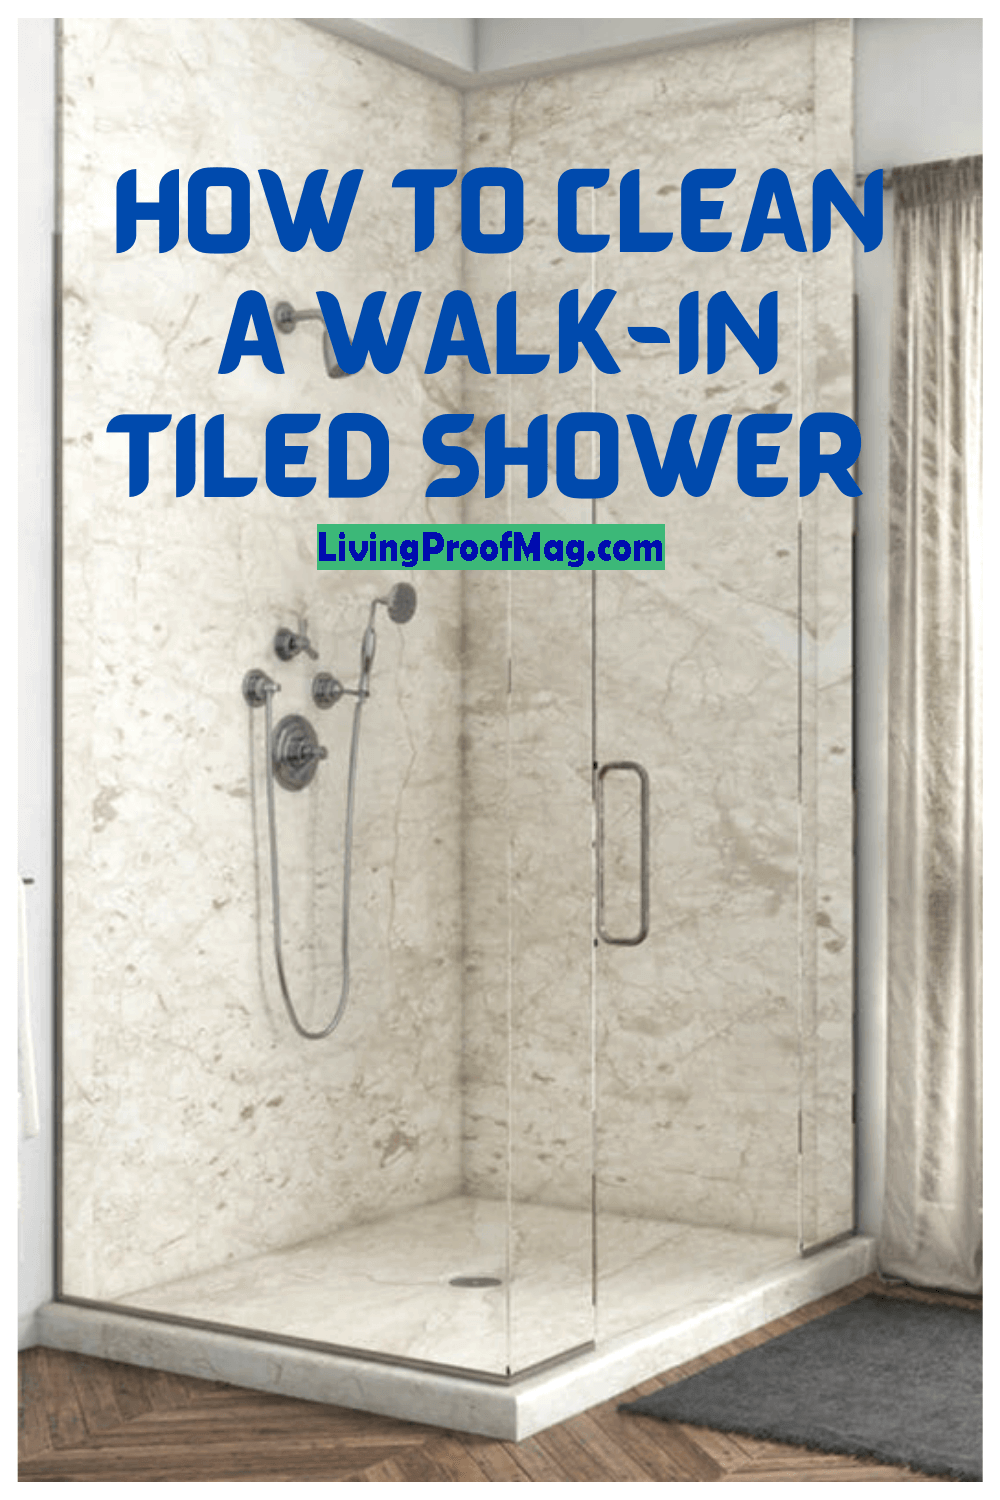 how to clean a walk in tiled shower